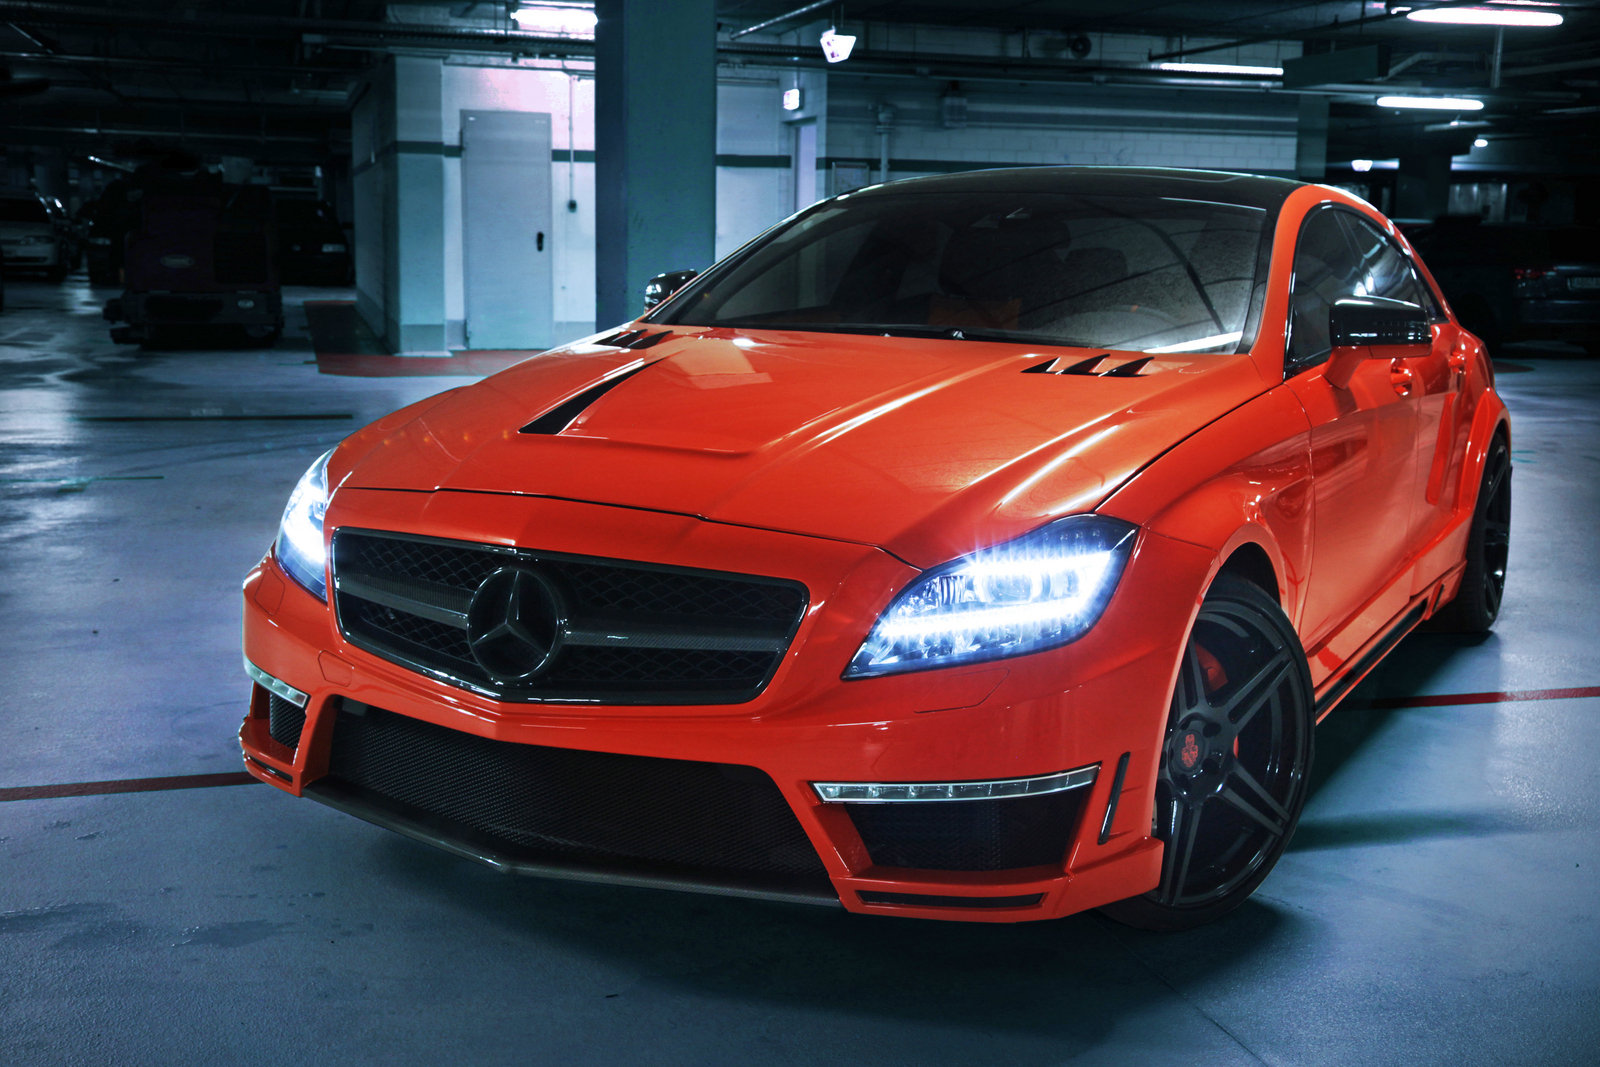 http://pictures.topspeed.com/IMG/crop/201303/mercedes-benz-cls63--5_1600x0w.jpg